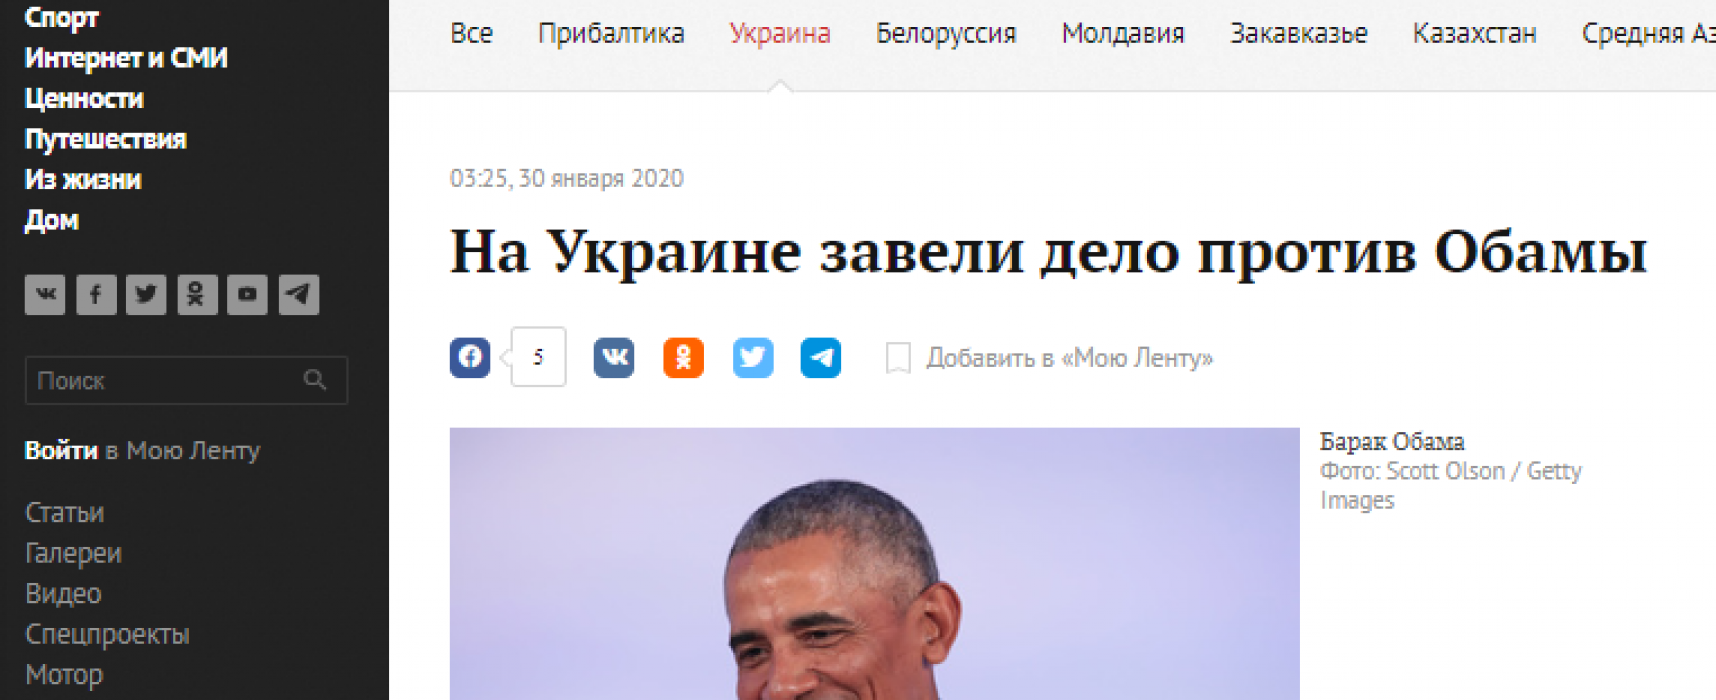 Fake: L'Ukraine porte plainte contre Obama